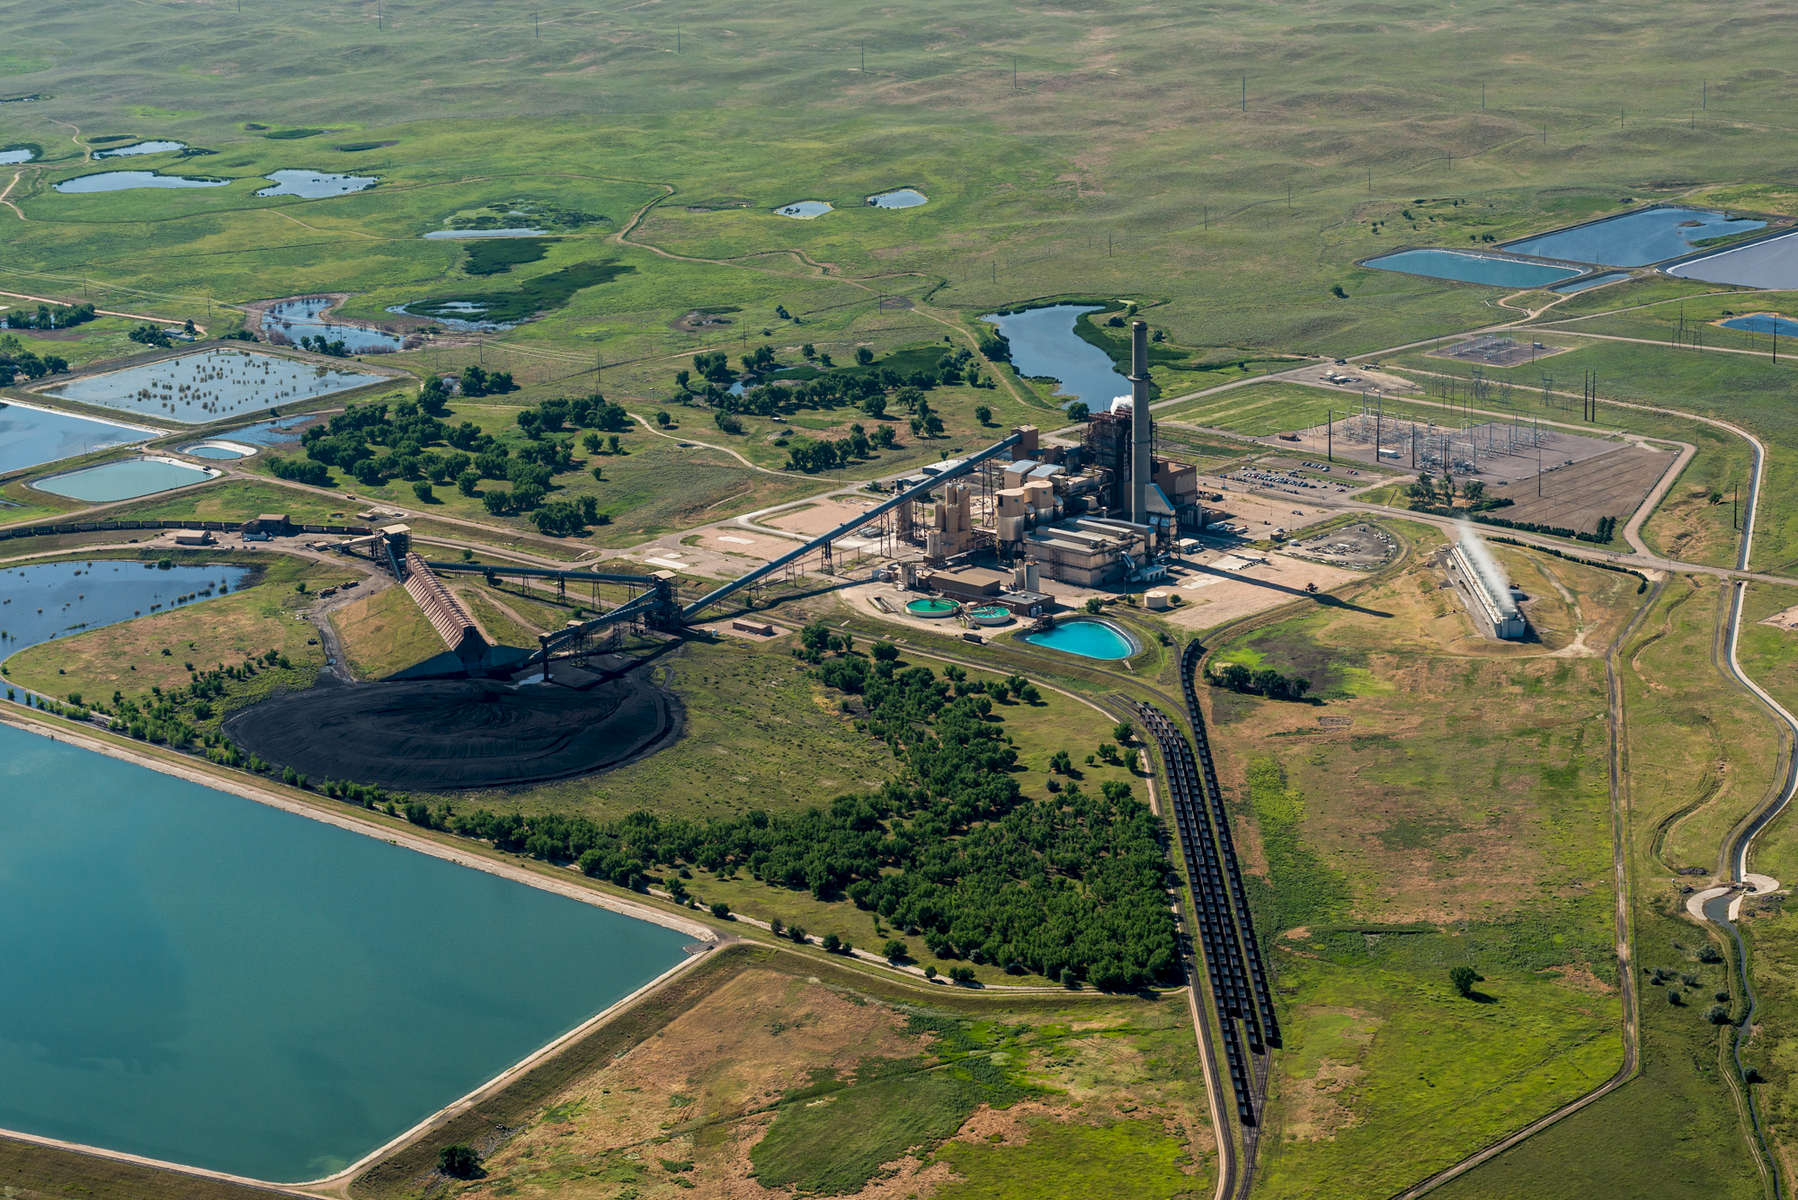 Pawnee Station is a coal-fired electridity generating power plant operated by Xcel Energy near Brush, CO.